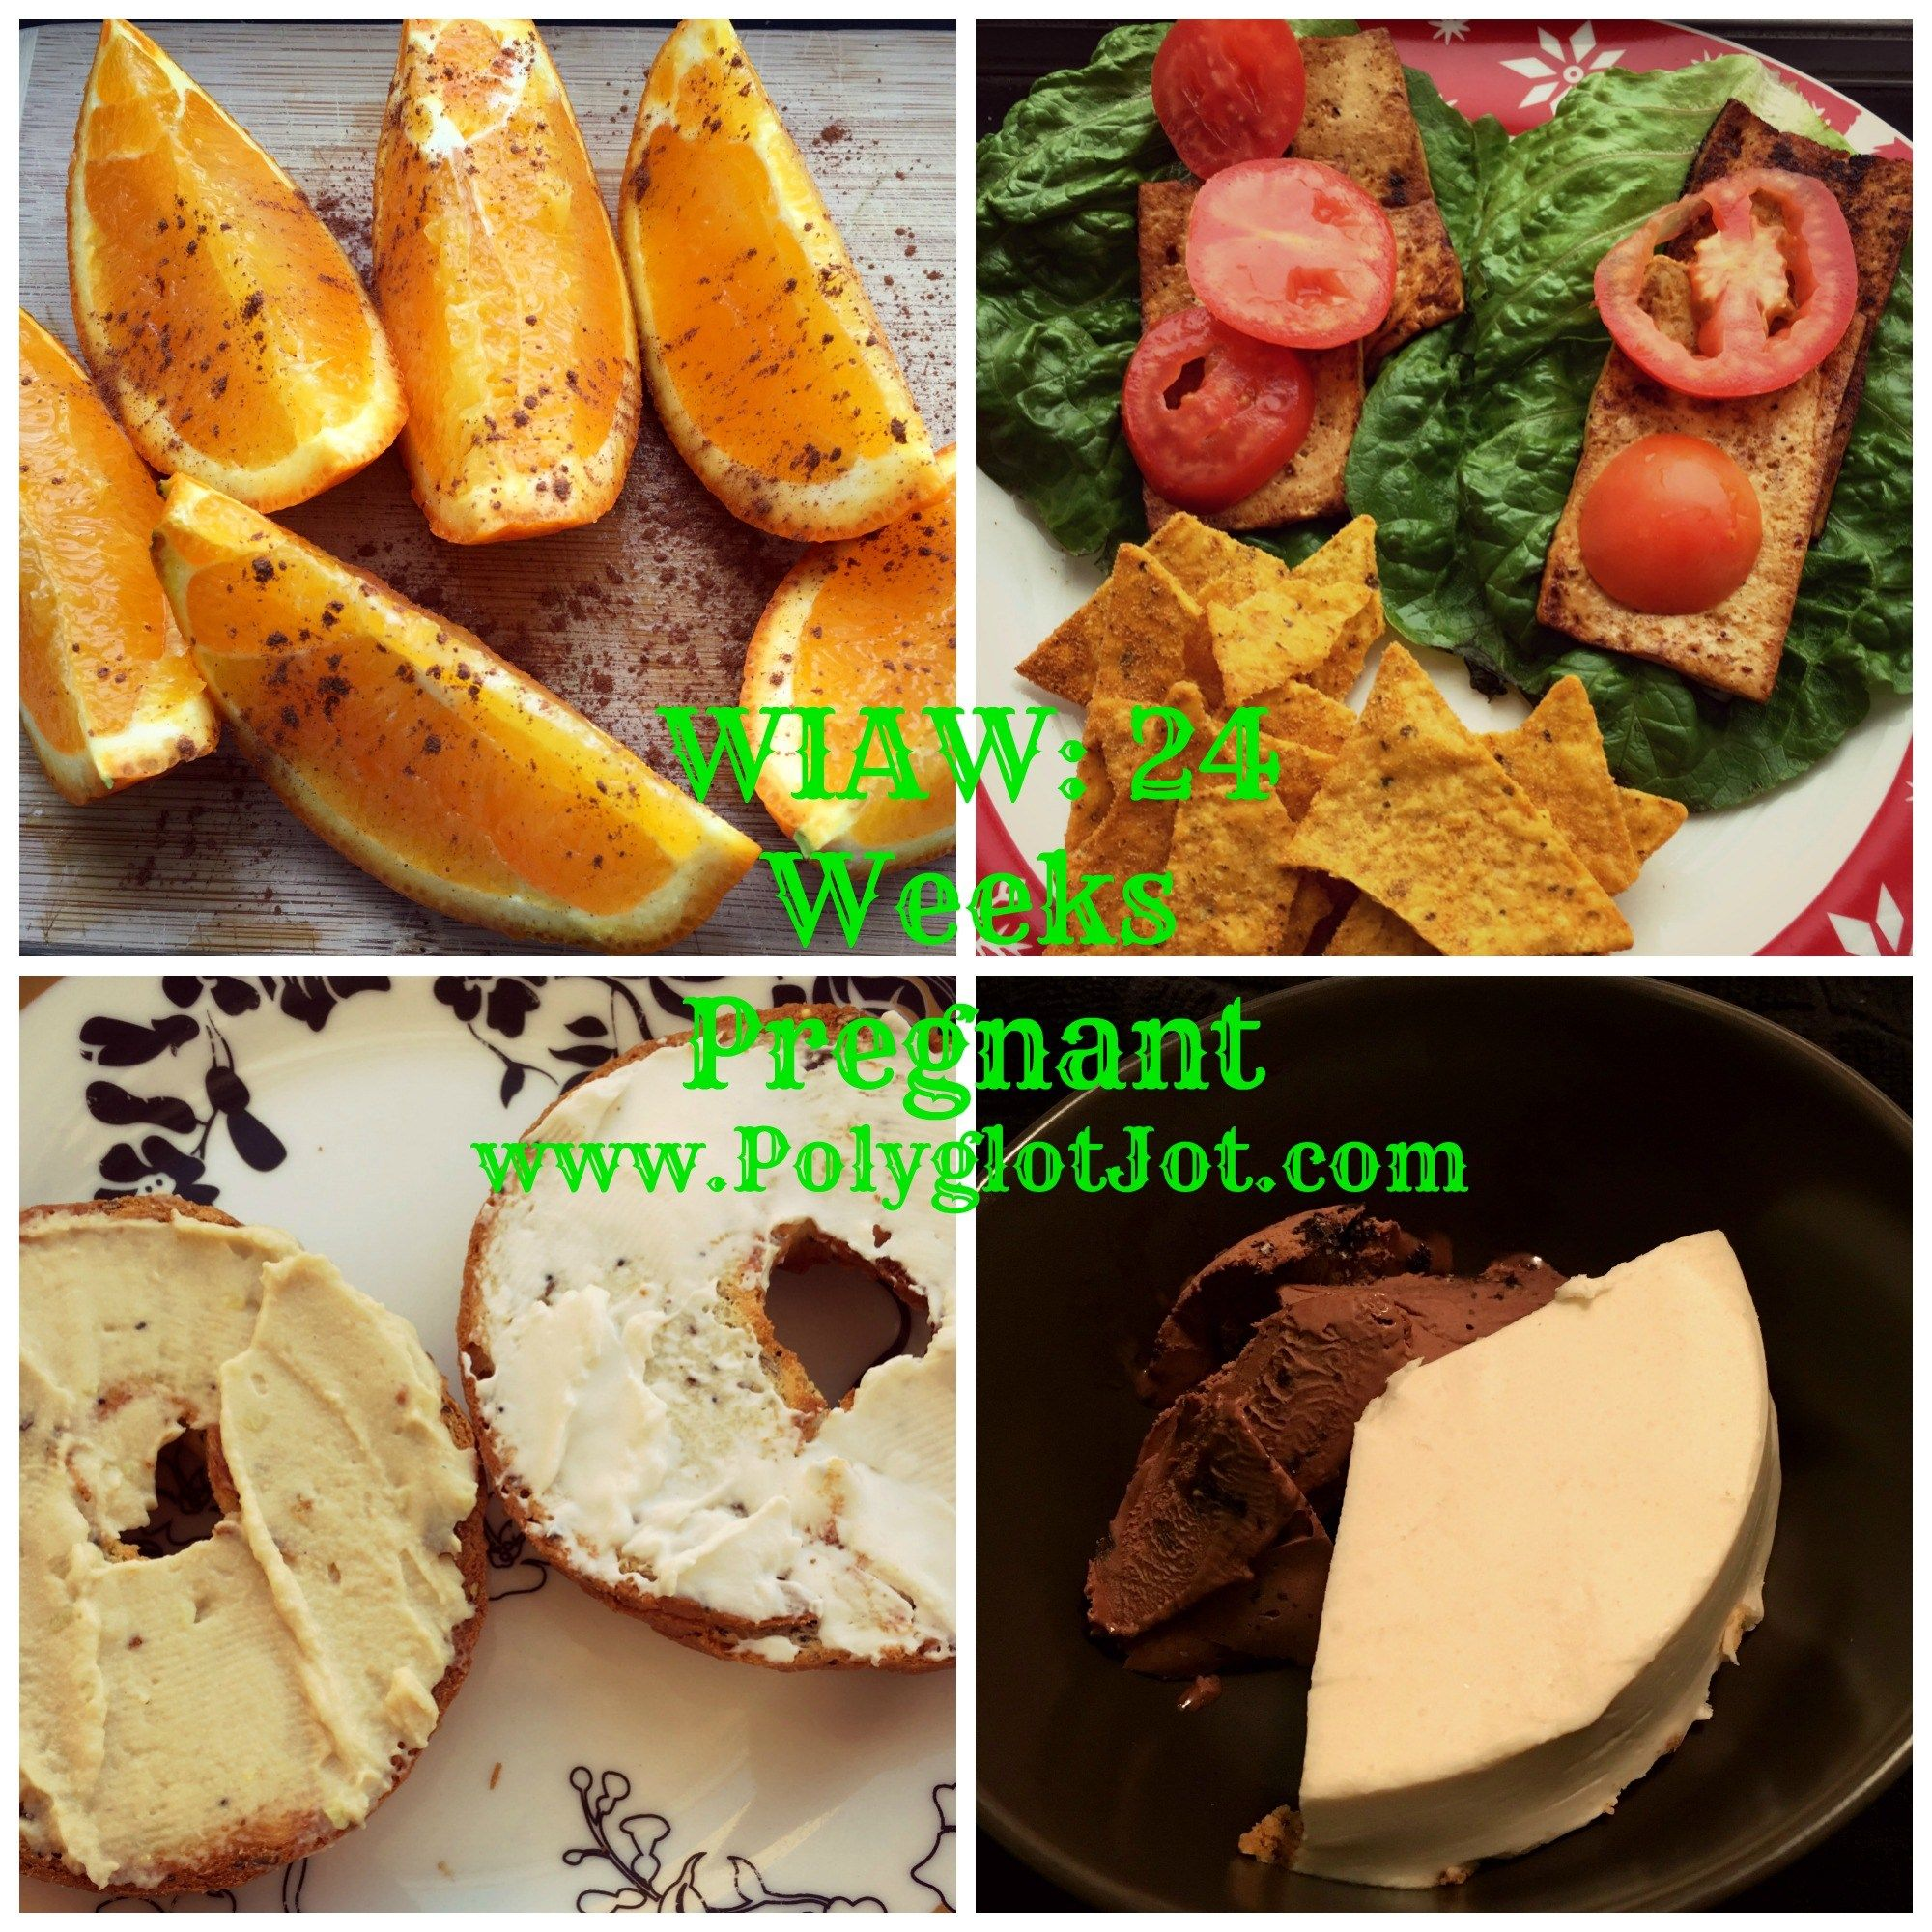 A day of healthy eats at 24 weeks pregnant